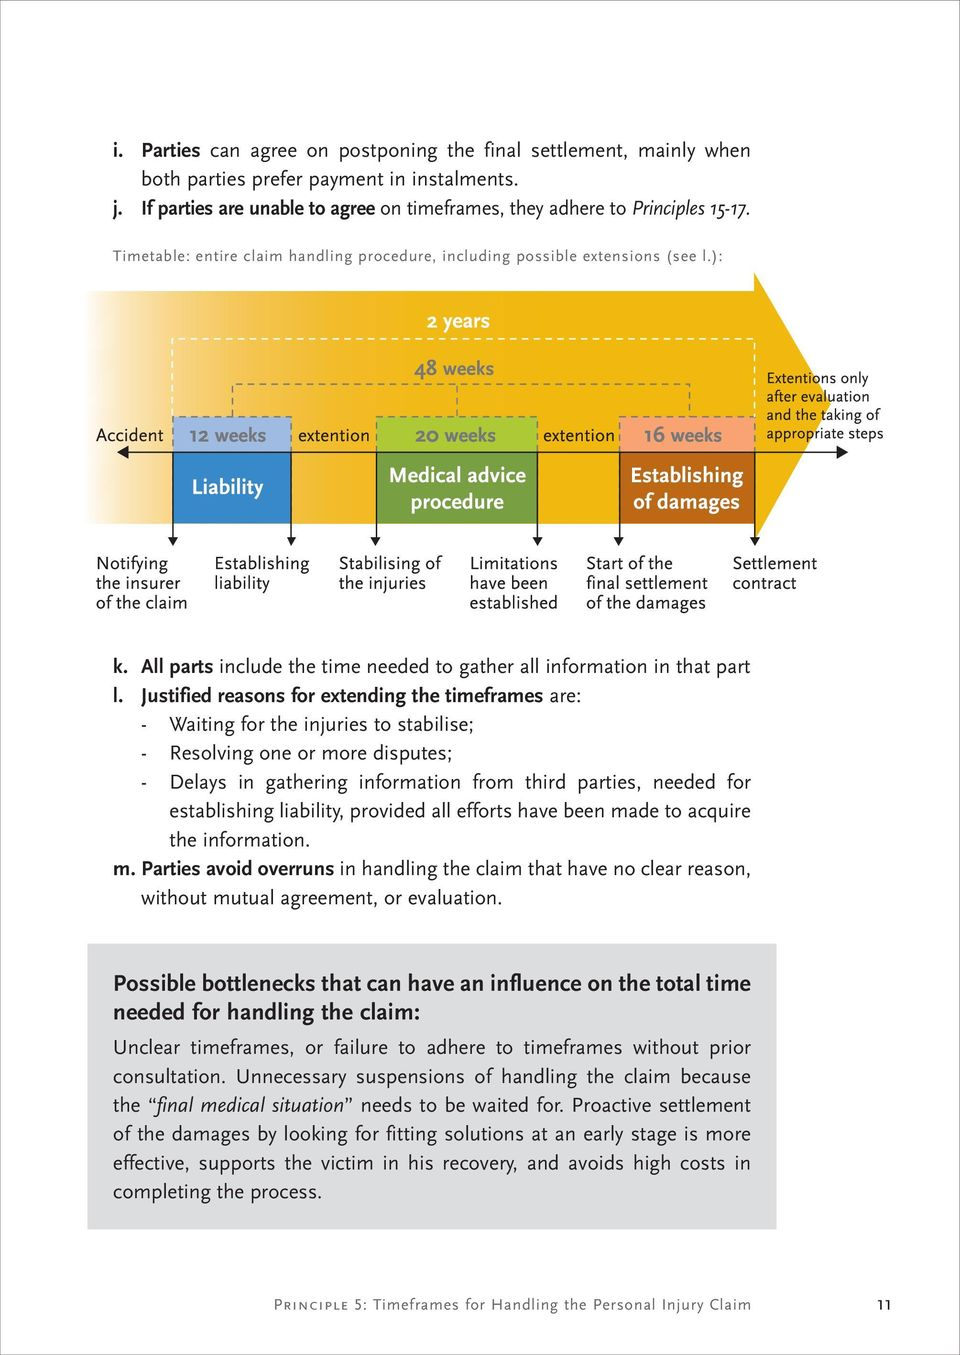 Justified reasons for extending the timeframes are: - Waiting for the injuries to stabilise; - Resolving one or more disputes; - Delays in gathering information from third parties, needed for